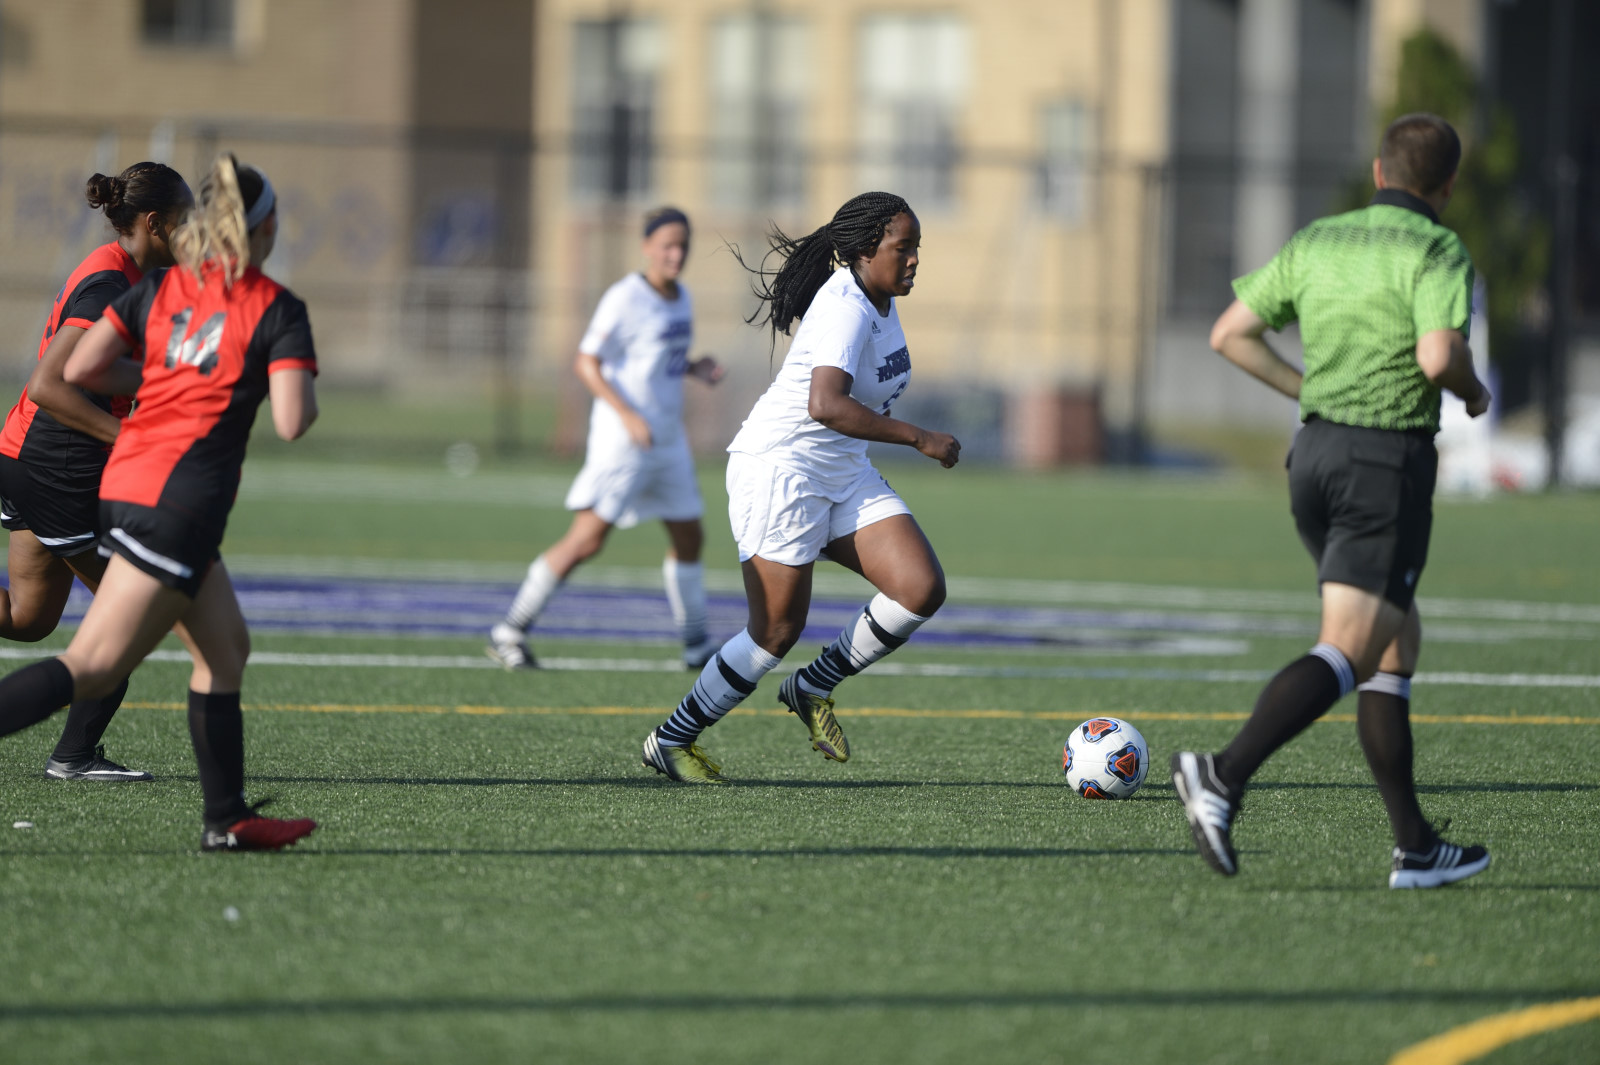 UB Women's Soccer Remains Unbeaten In ECC Play With 3-0 Victory At St. Thomas Aquinas